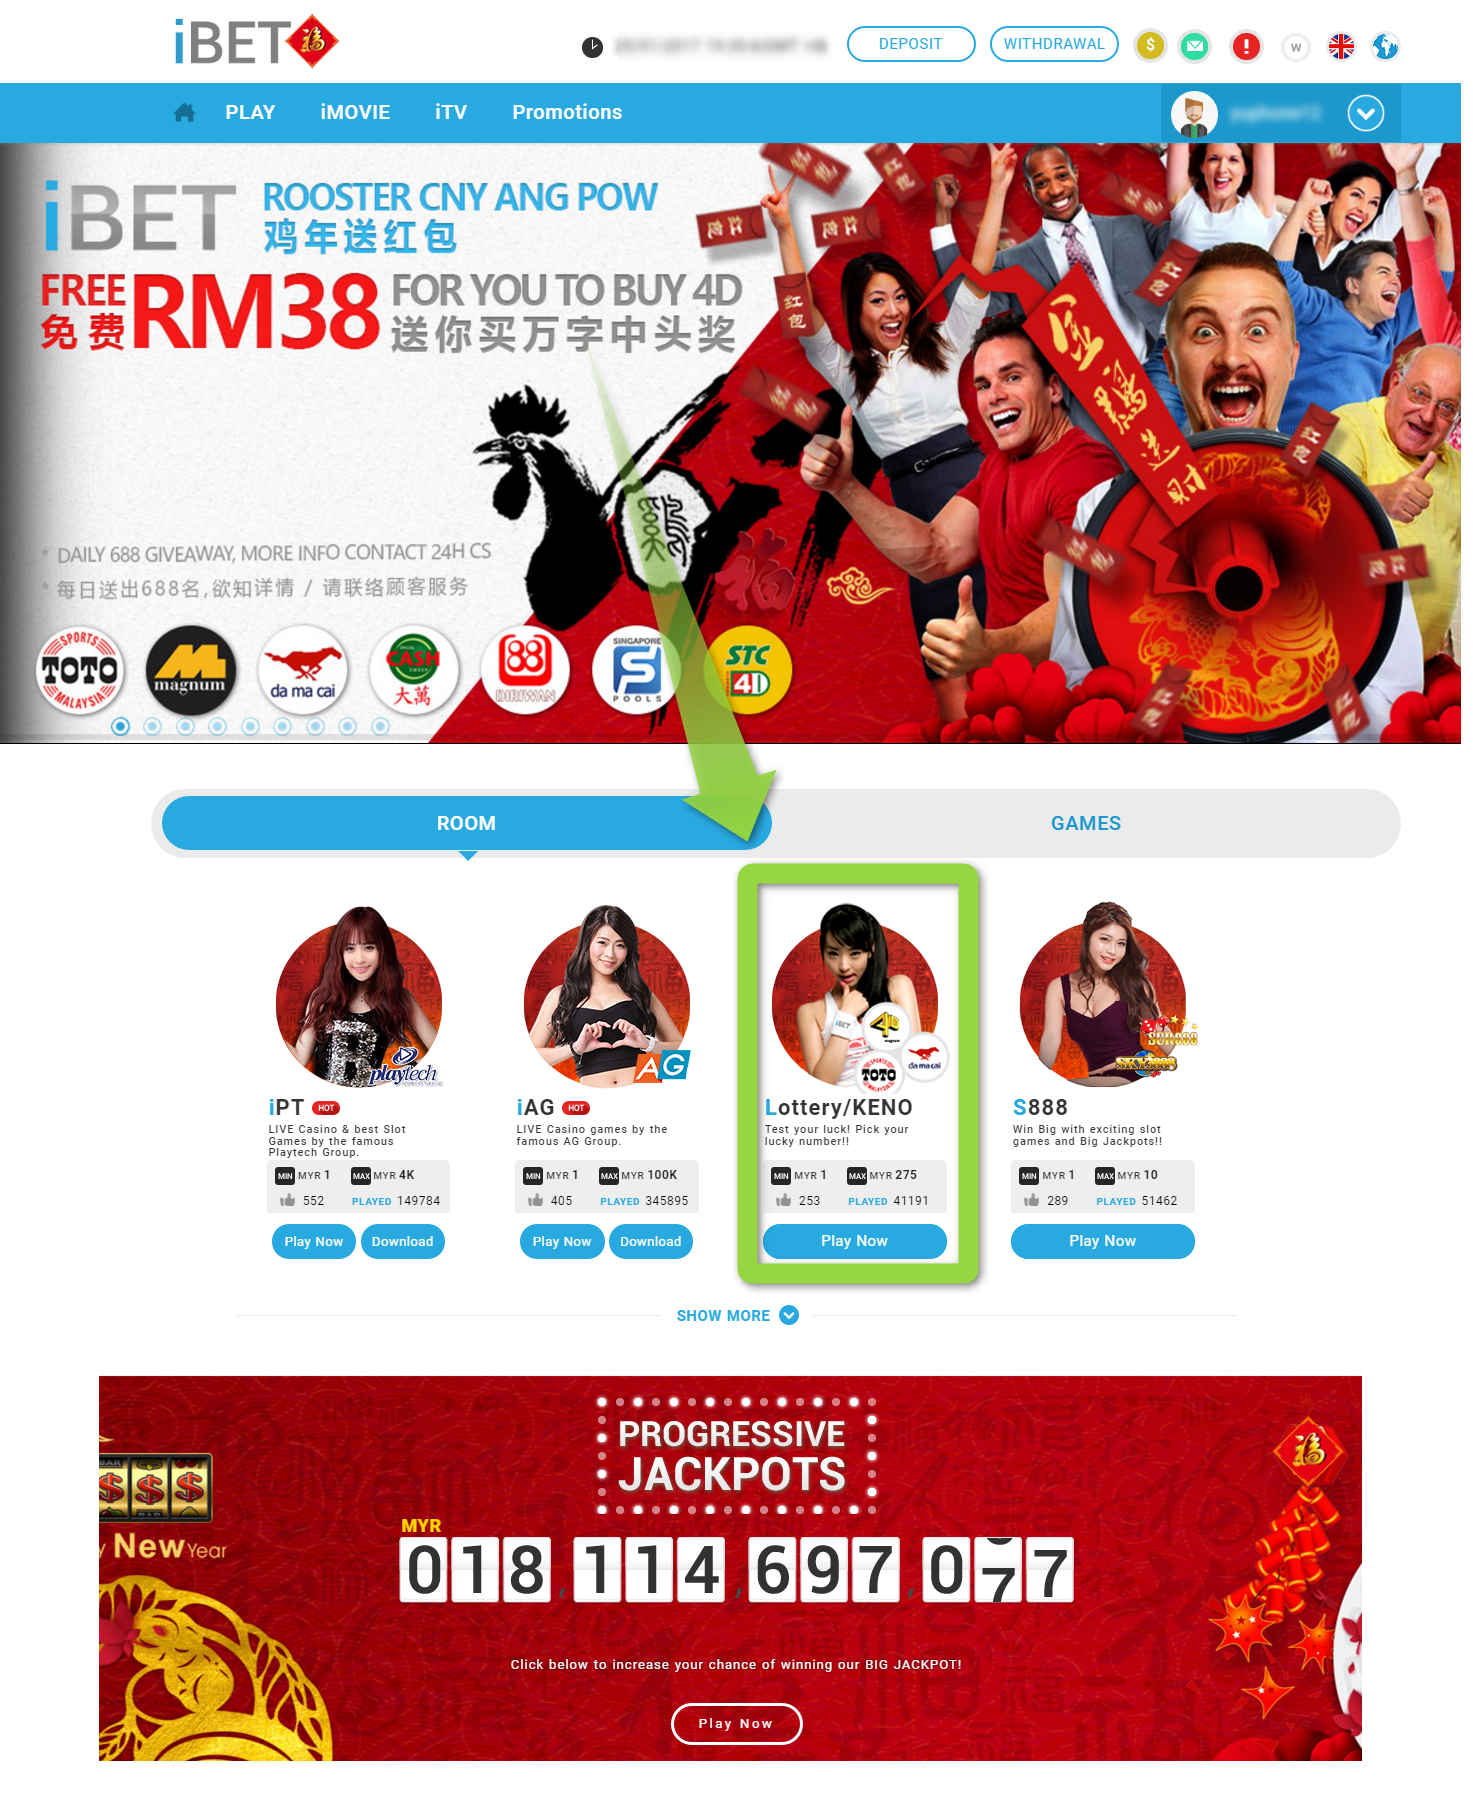 Get ibet free rm38 angpow at rooster cny tutorial 4d for Ang pow koi fish tutorial